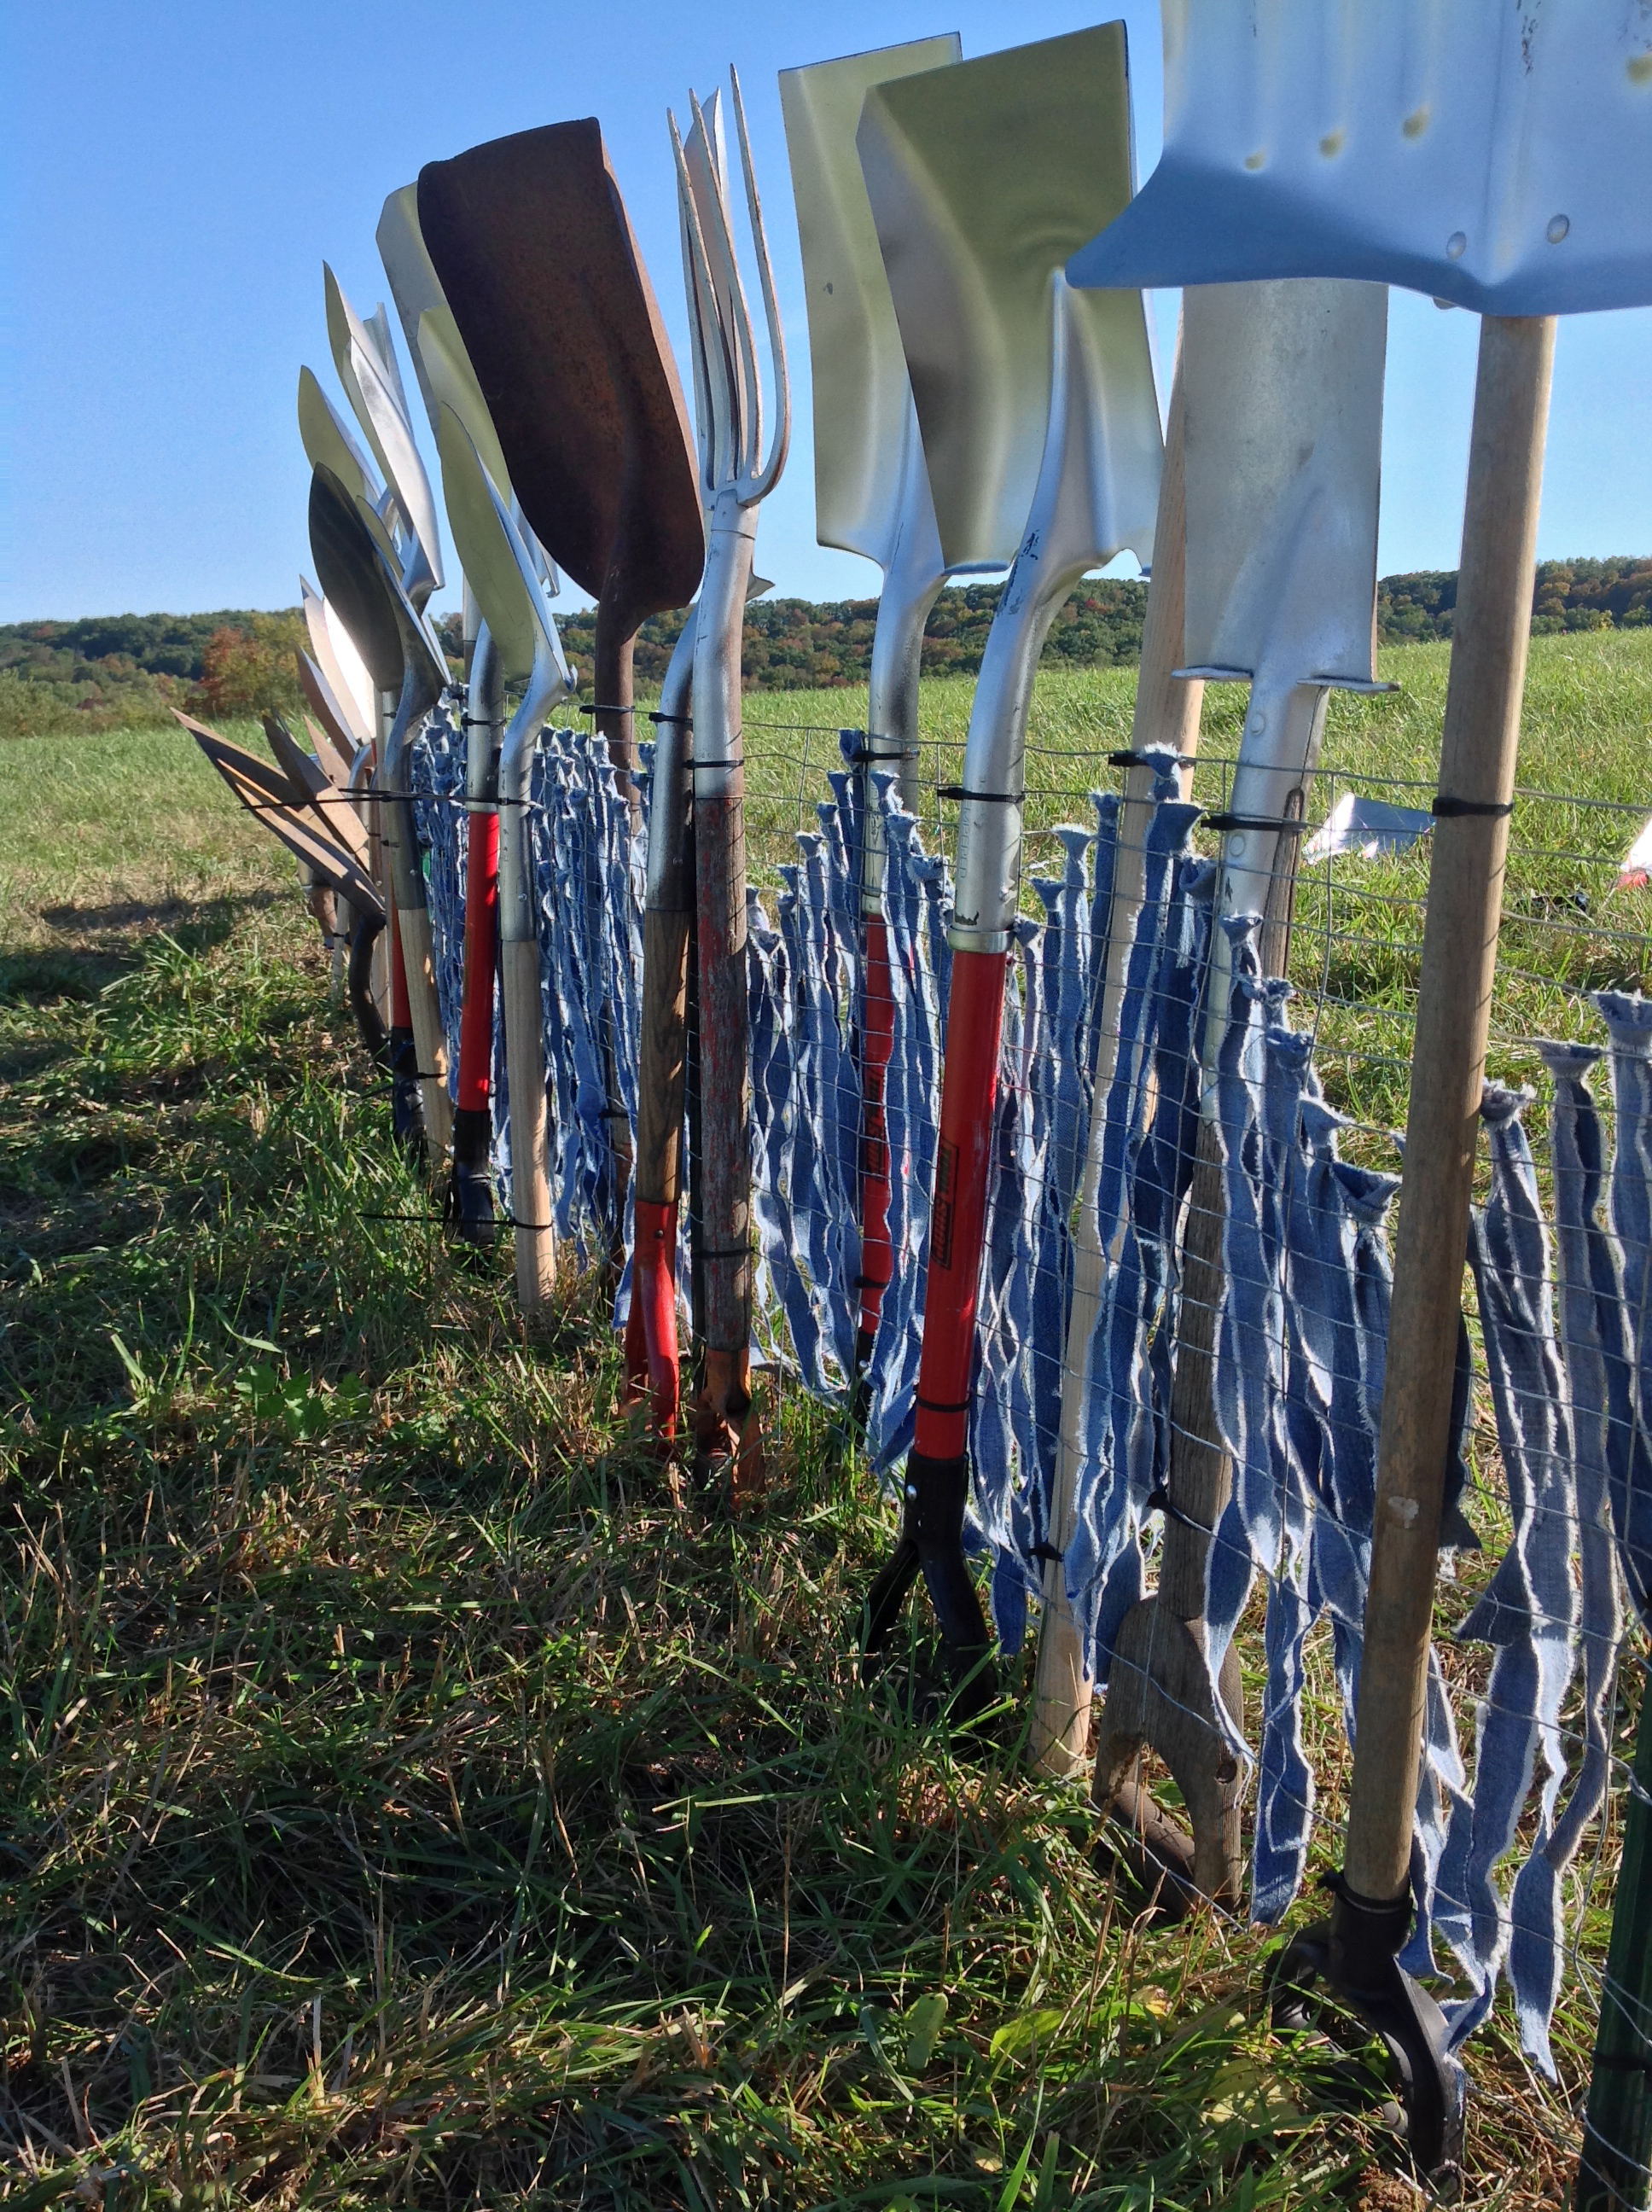 2013  Site specific temporary installation as part of Fermentaion Fest's Farm Art D-tour in Reedsburg, WI.  Approximately 500 shovels to make a 125 foot fence. Denim for tithing was donated, added by viewers.  Photography by author and by Florence Katzenbach